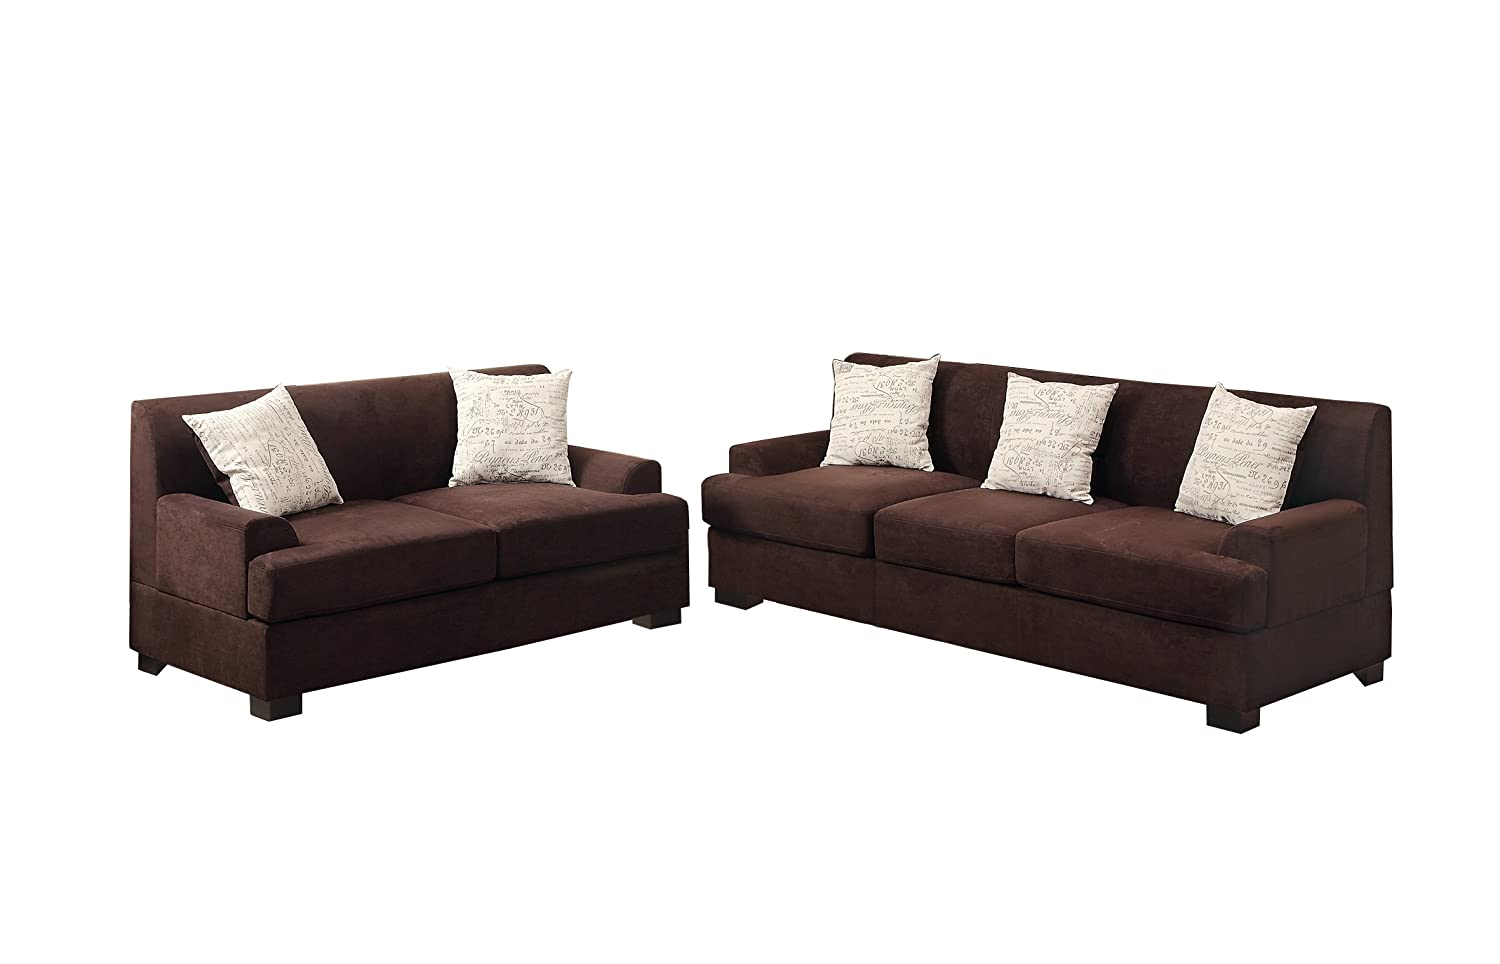 Poundex Bobkona Barrie Microsuede 2 Piece Sofa and Loveseat Set - Chocolate